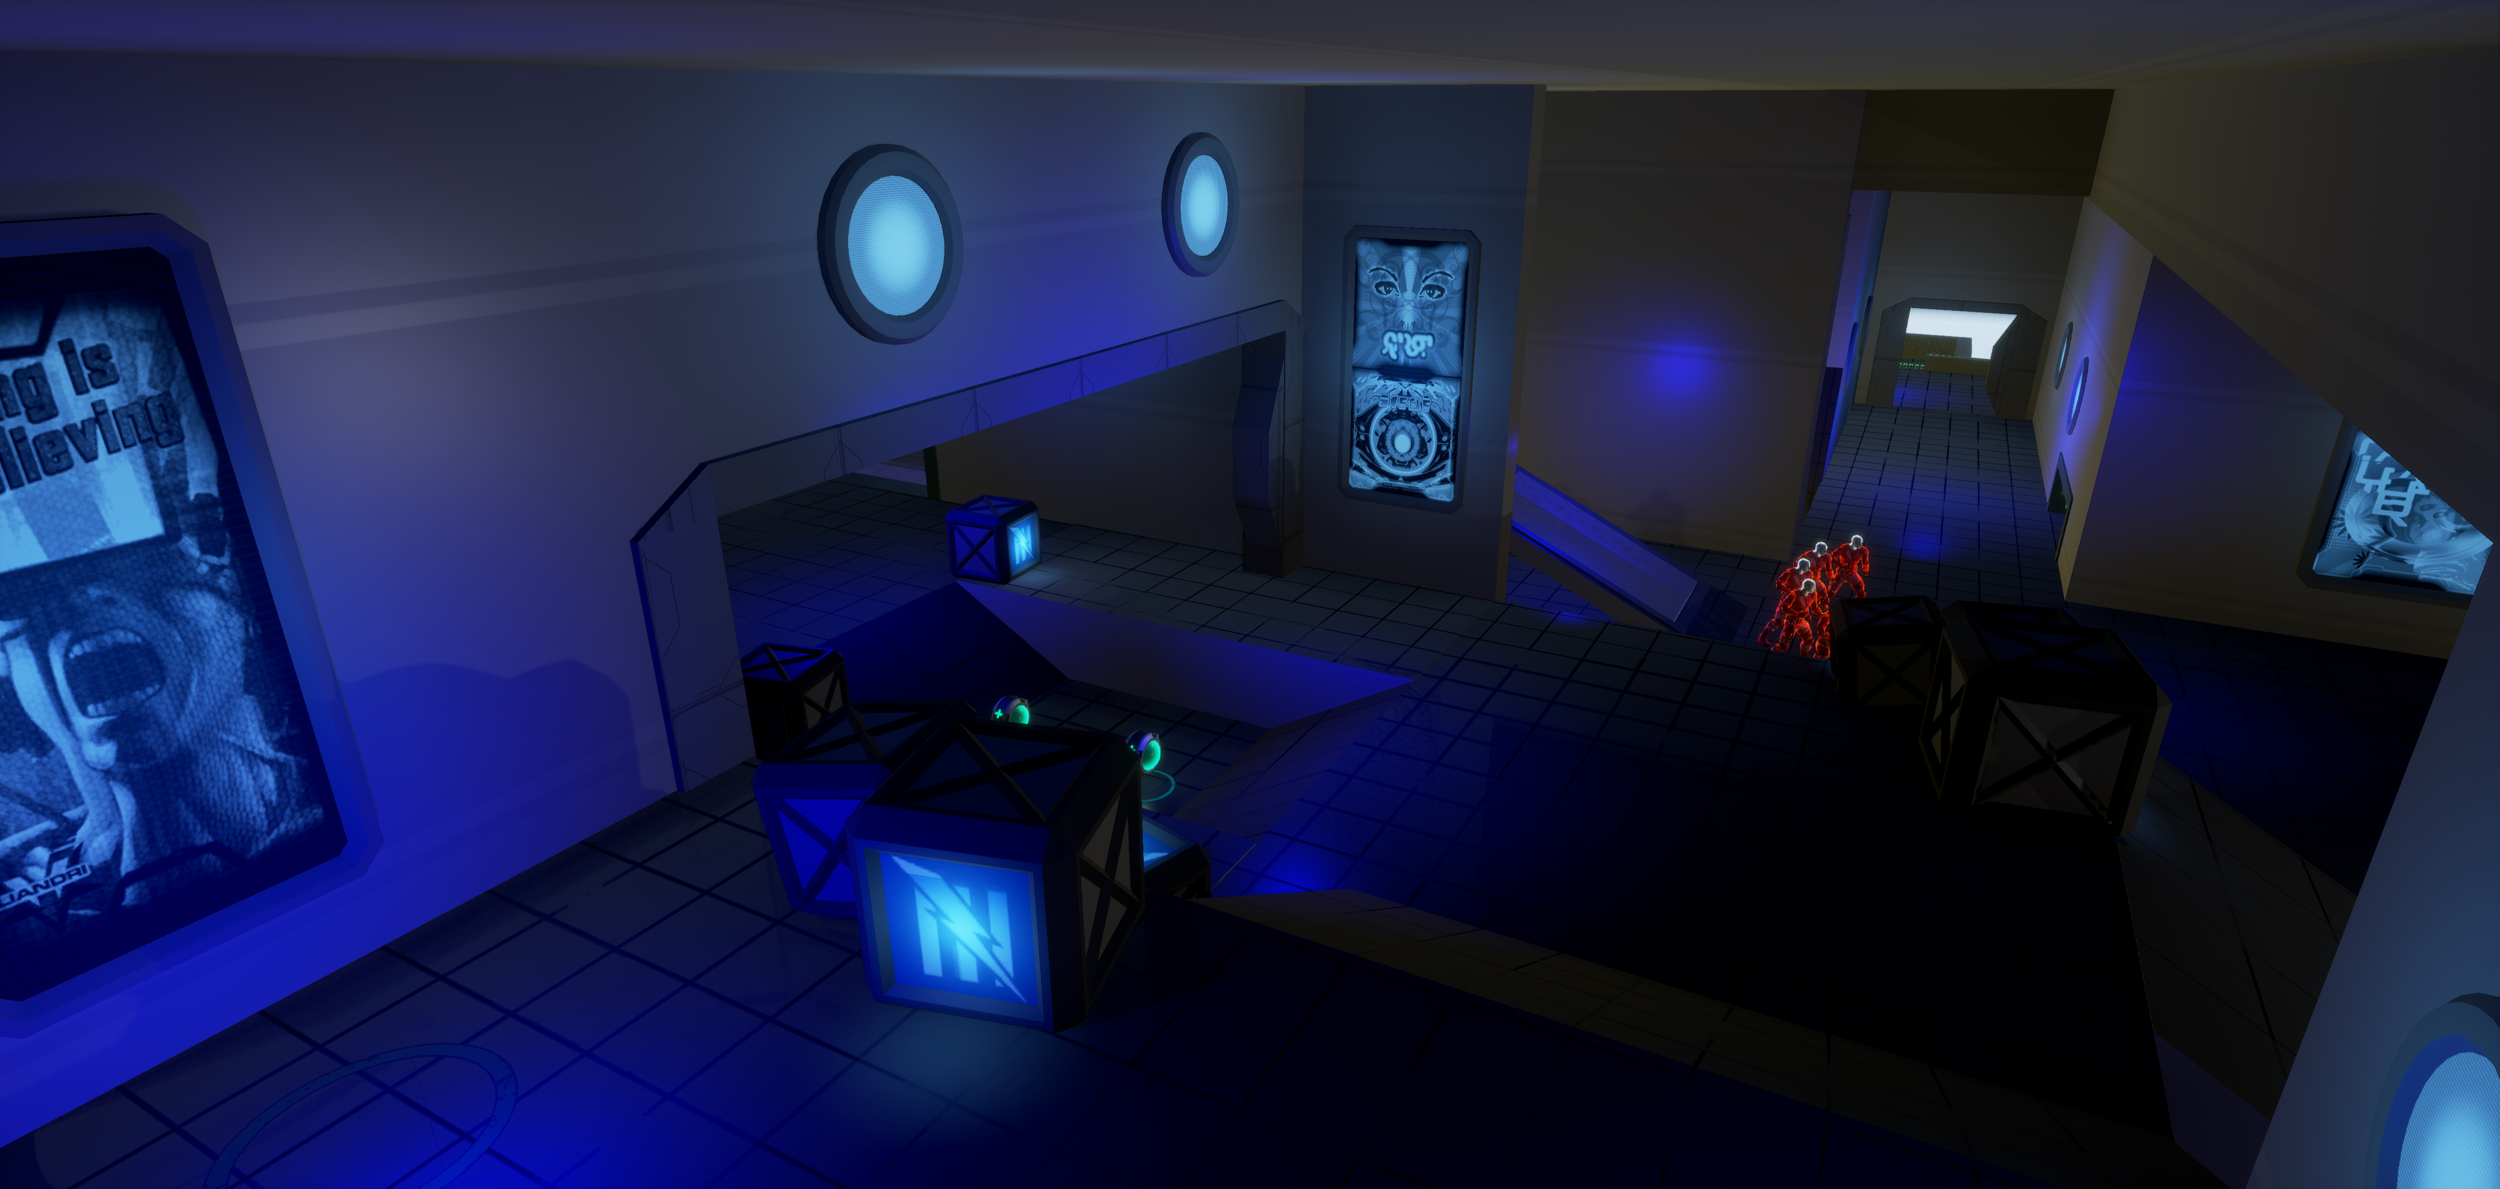 Figure 5: The forward defending area, imagined as a cargo bay. Exit to the center arena to the right and a passage leading further into Blue Base on the left, shock rifle outpost behind camera.